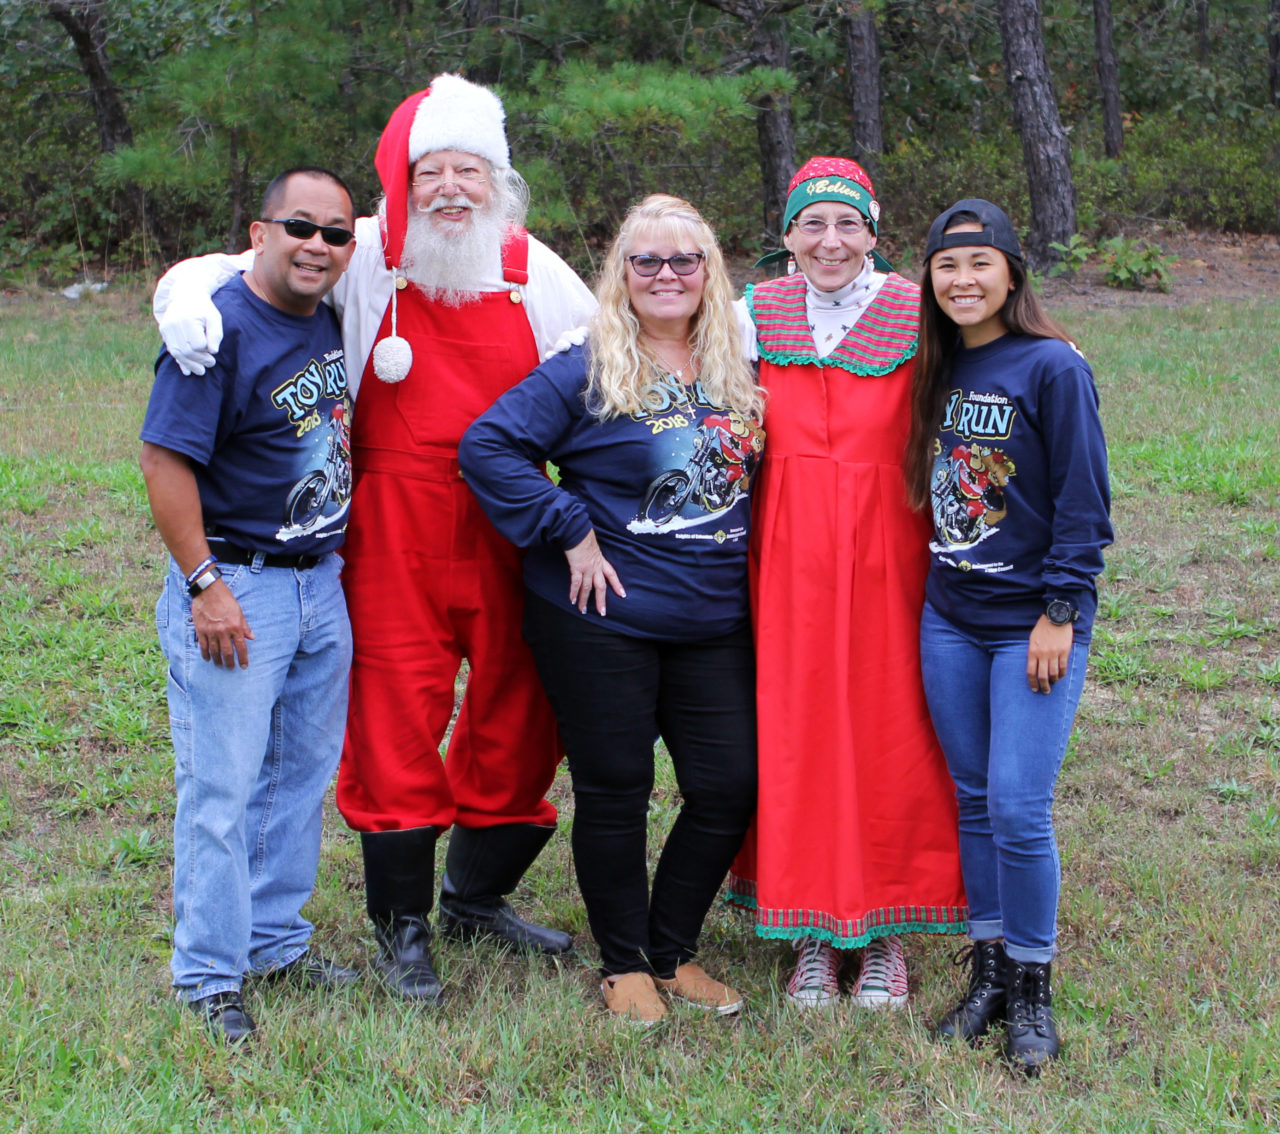 Jarin family with Santa Claus and Mrs. Claus